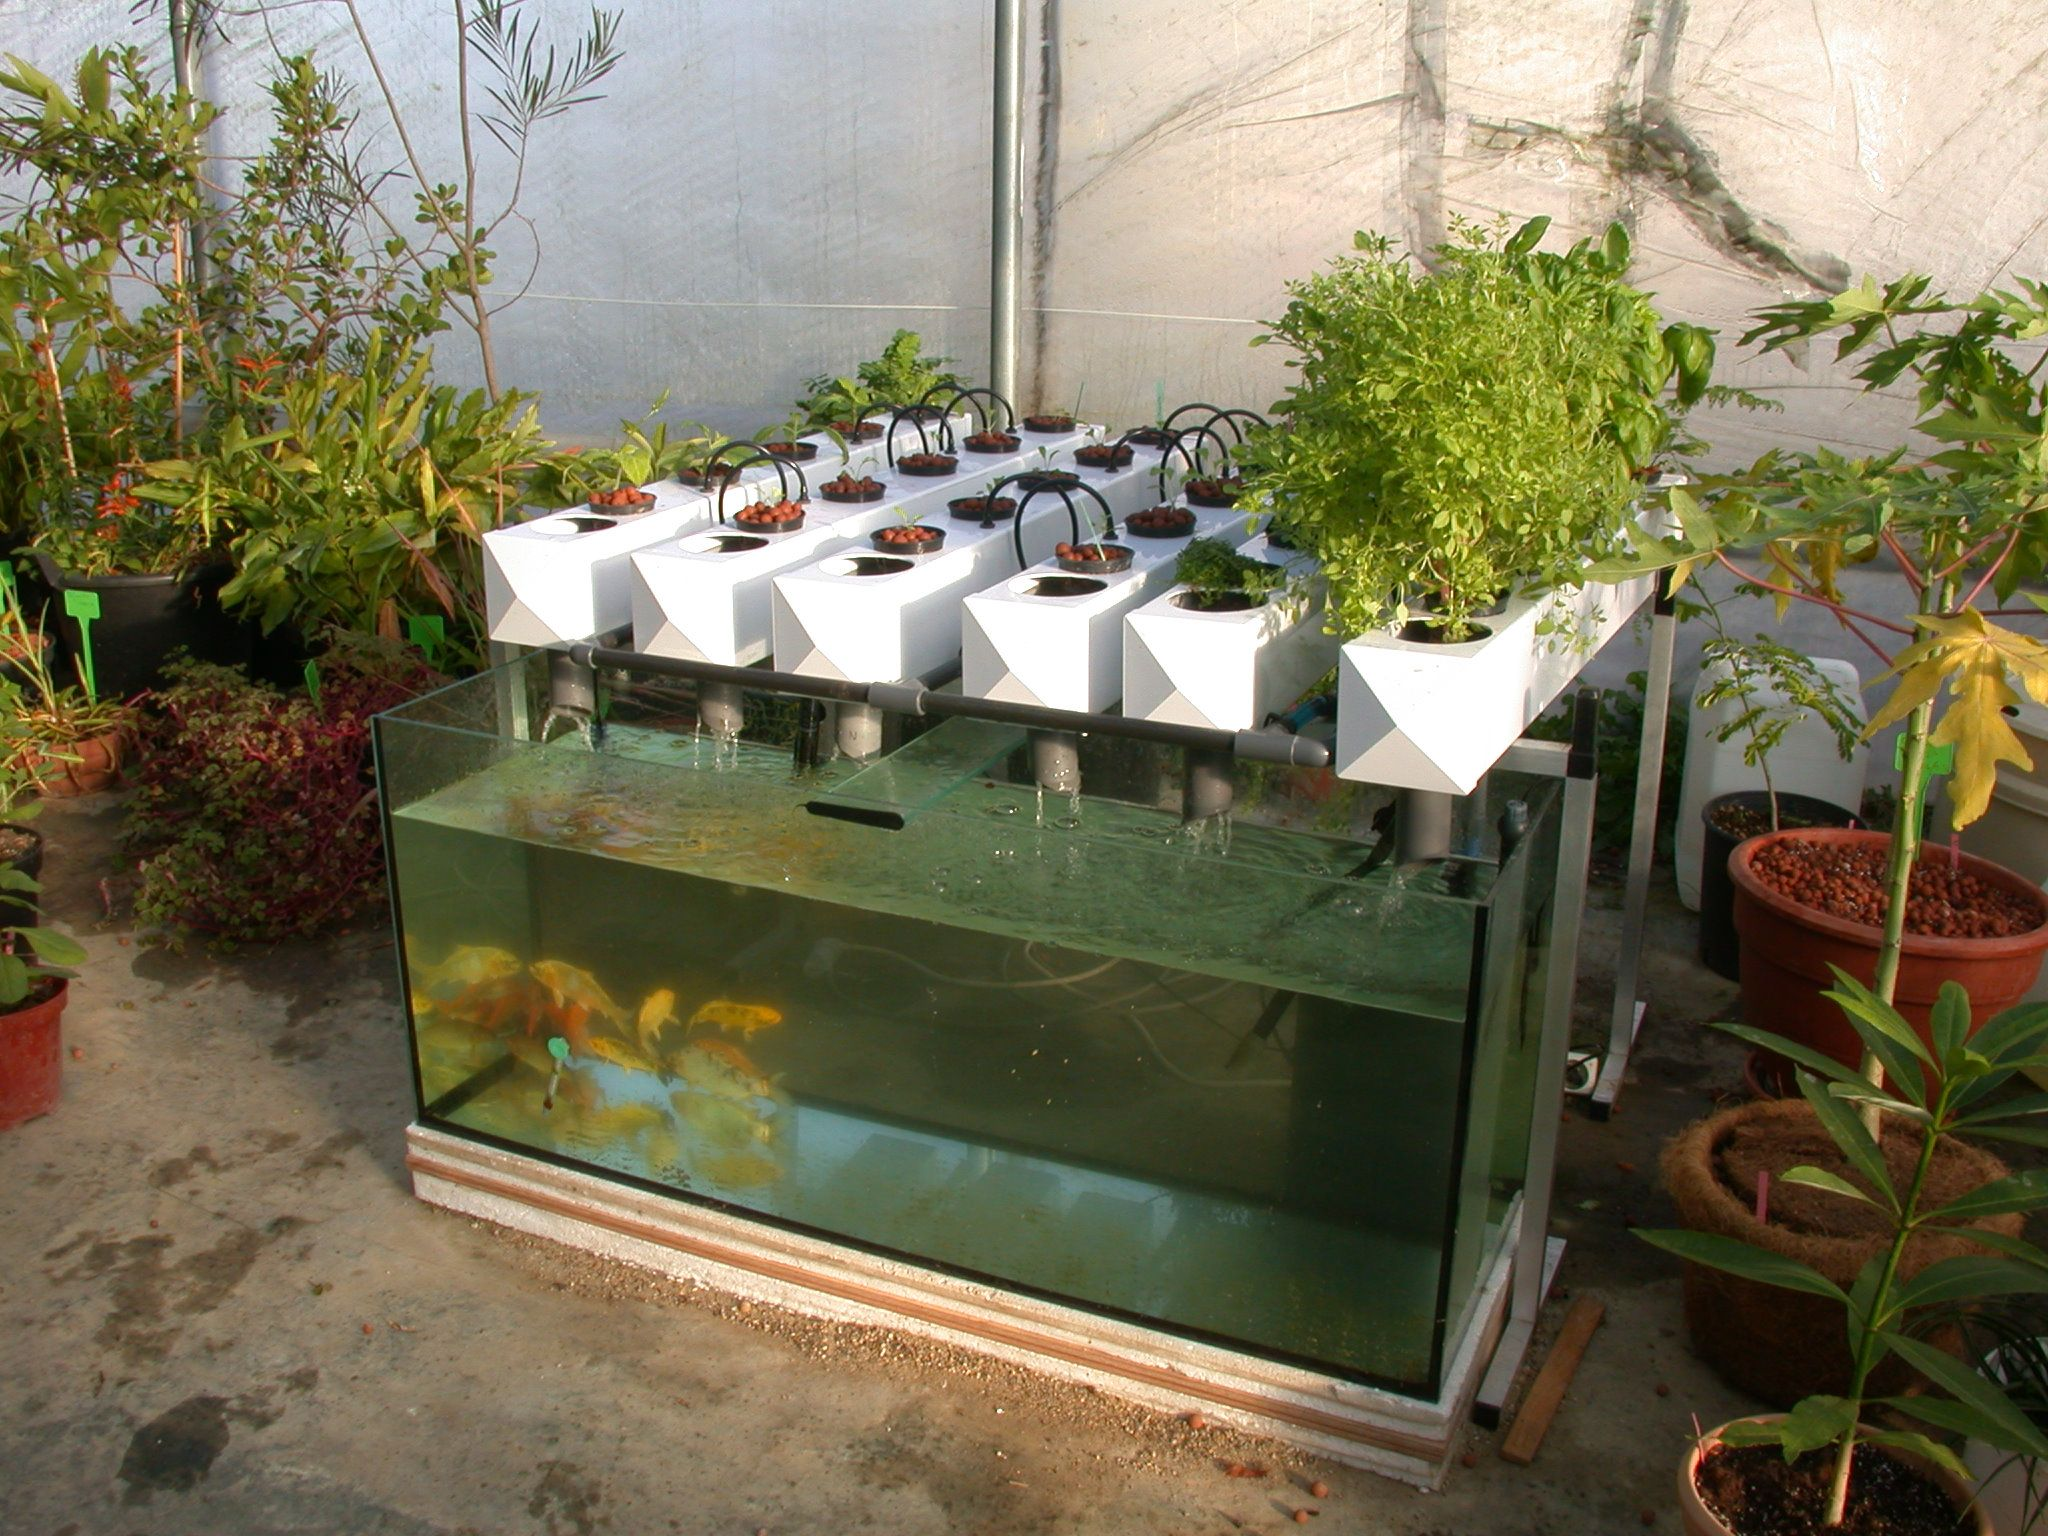 Aquaponics general hydroponics europe ghe official for Design of a pond system